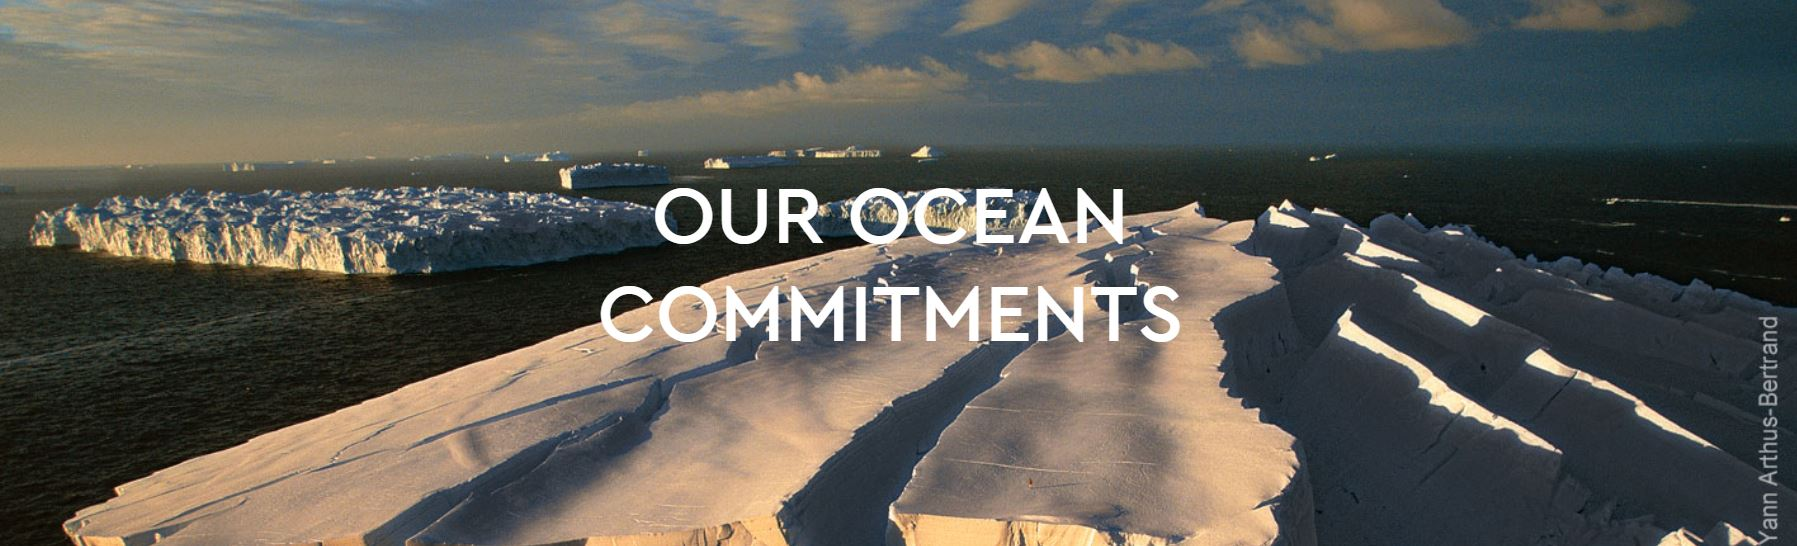 Our Ocean 2017 – commitments against marine pollution